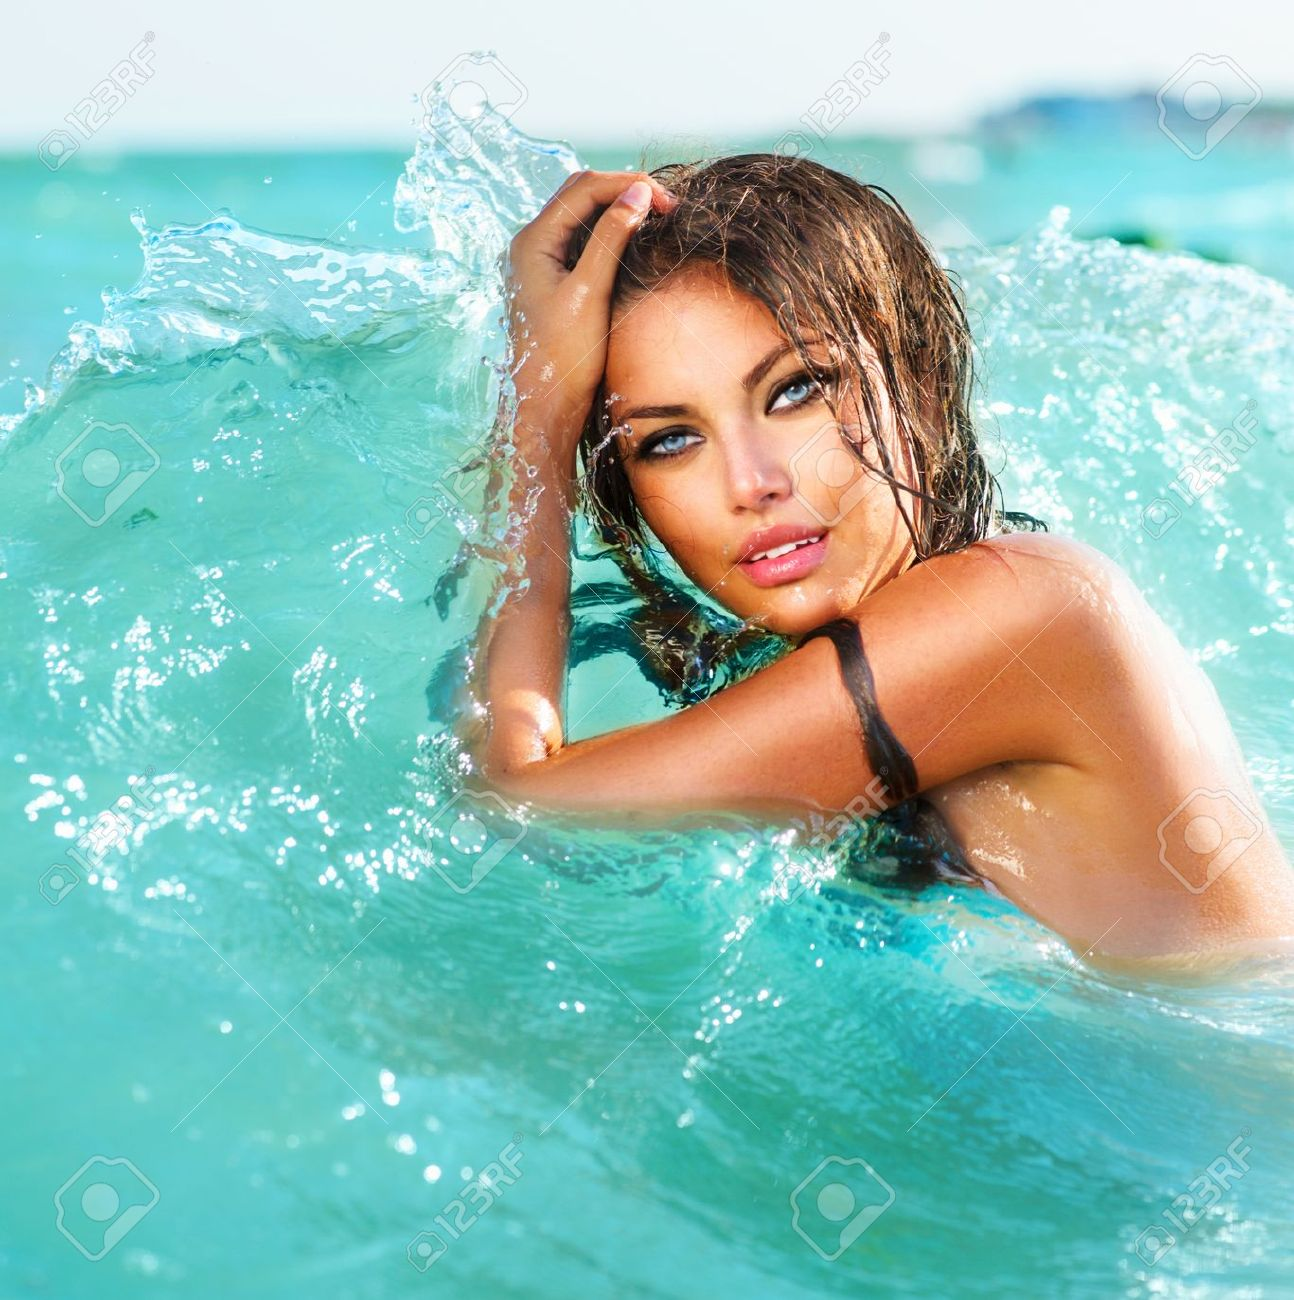 Beauty Sexy Model Girl Swimming And Posing In The Water Stock ...